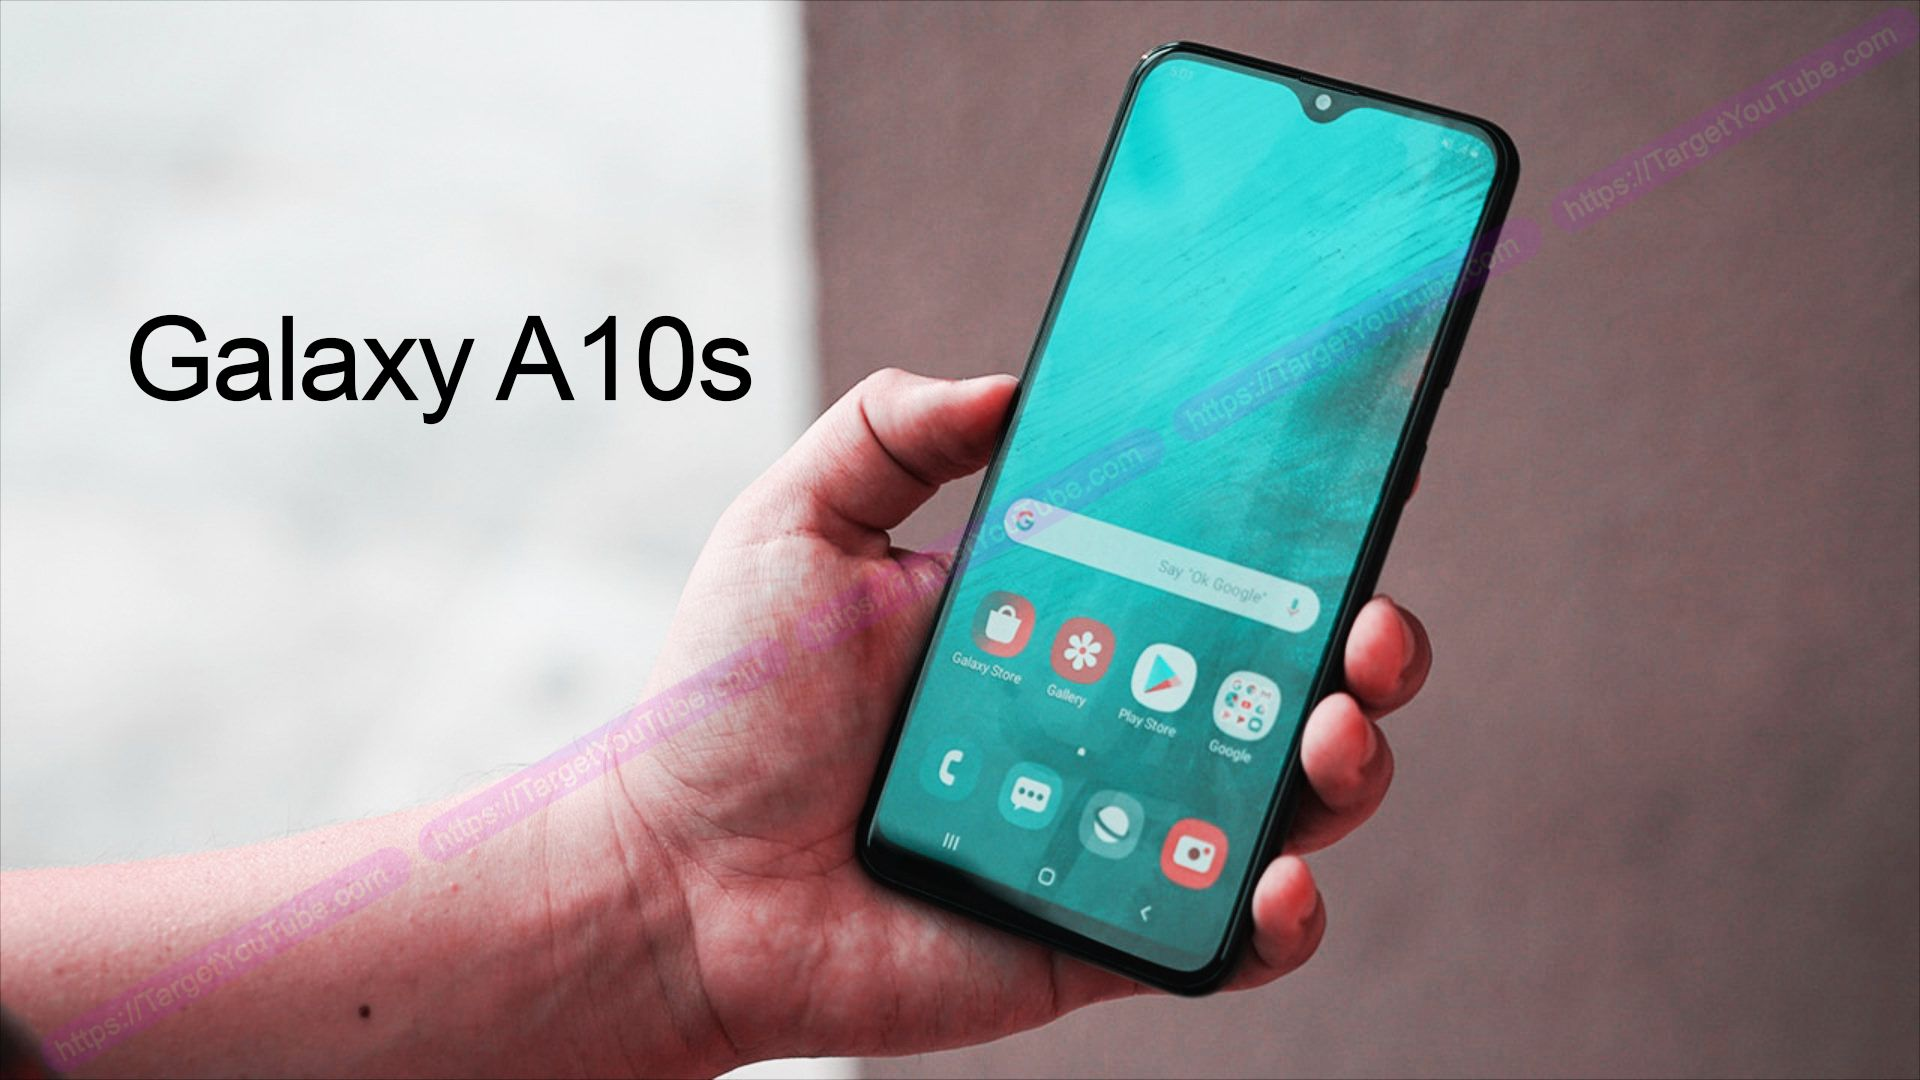 Budget Mobile Phone Samsung Galaxy A10s New Leaks And Design Samsunggalaxya10s Galaxya10s Samsunga10s Samsung Phone Samsung Galaxy Samsung Galaxy Wallpaper